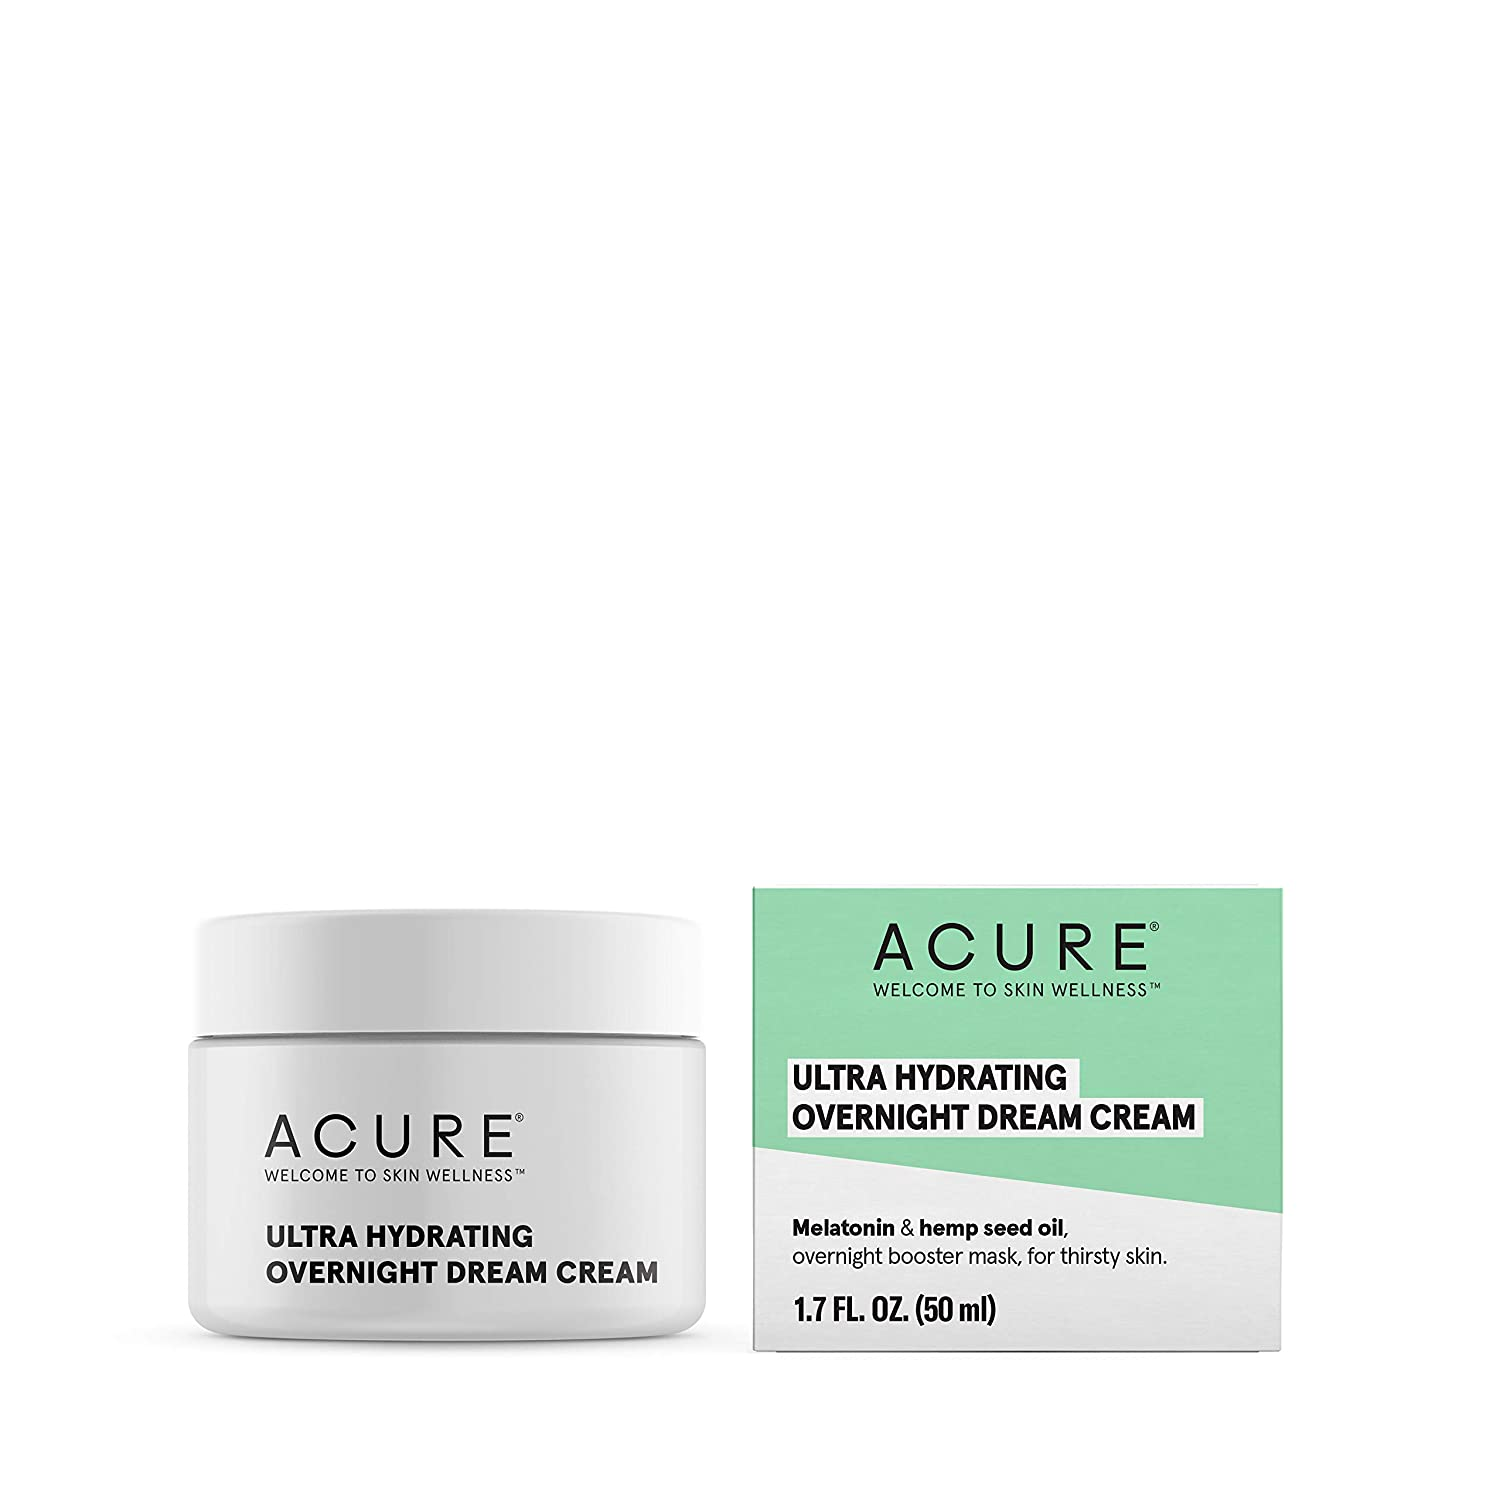 ACURE Ultra Hydrating Overnight Dream Cream